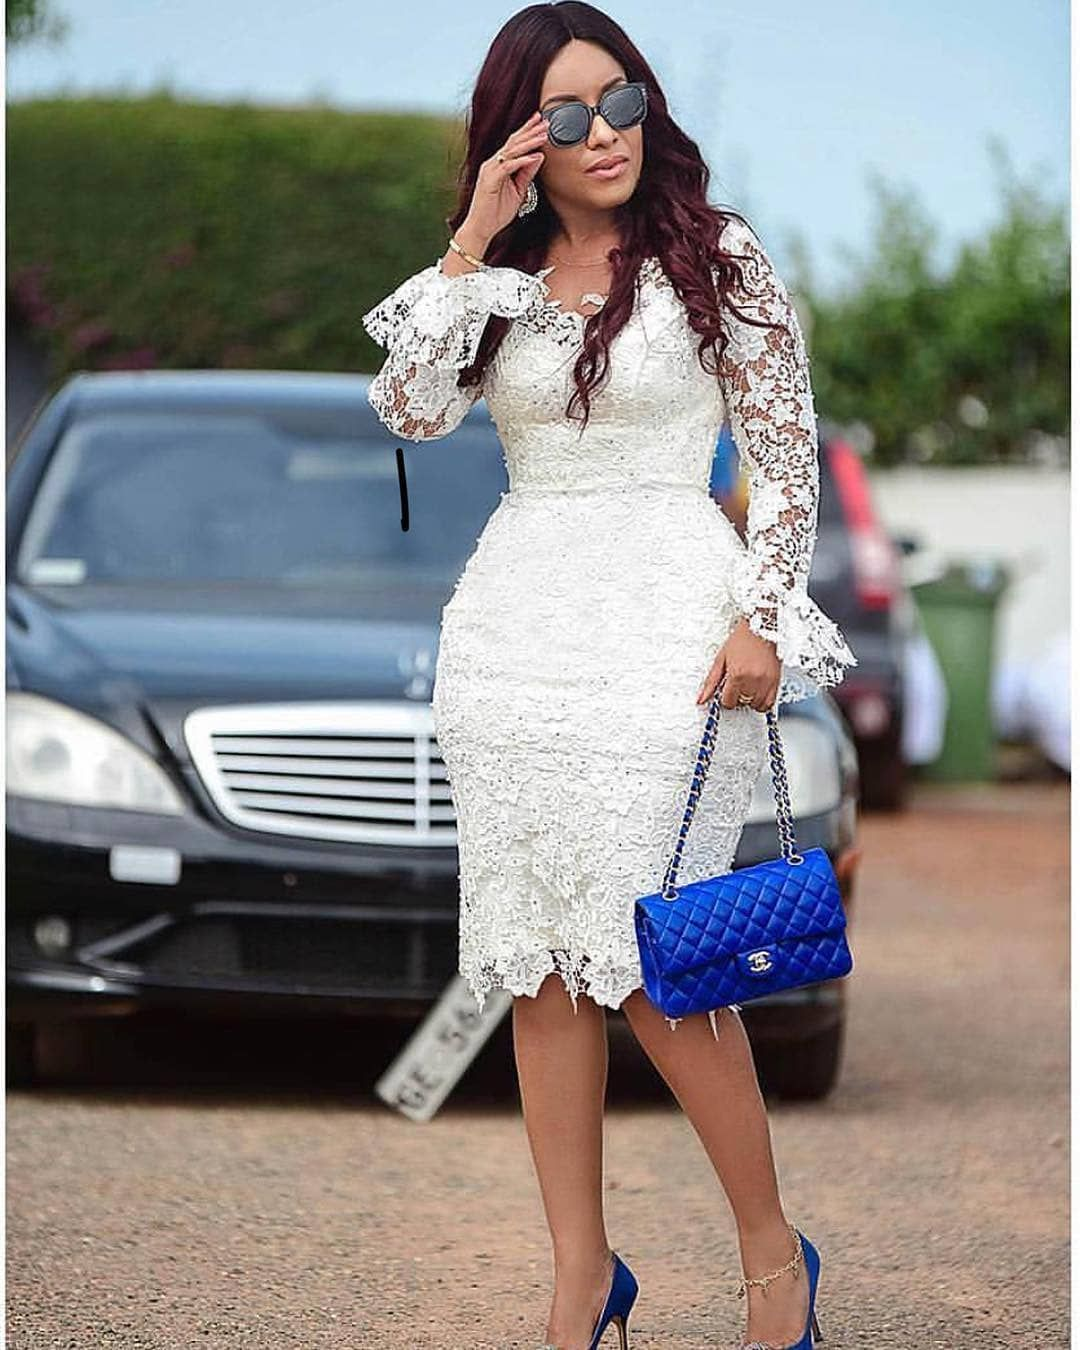 Aosebi Styles Joselyn Dumas Lace Dress Styles Latest African Fashion Dresses African Lace Dresses